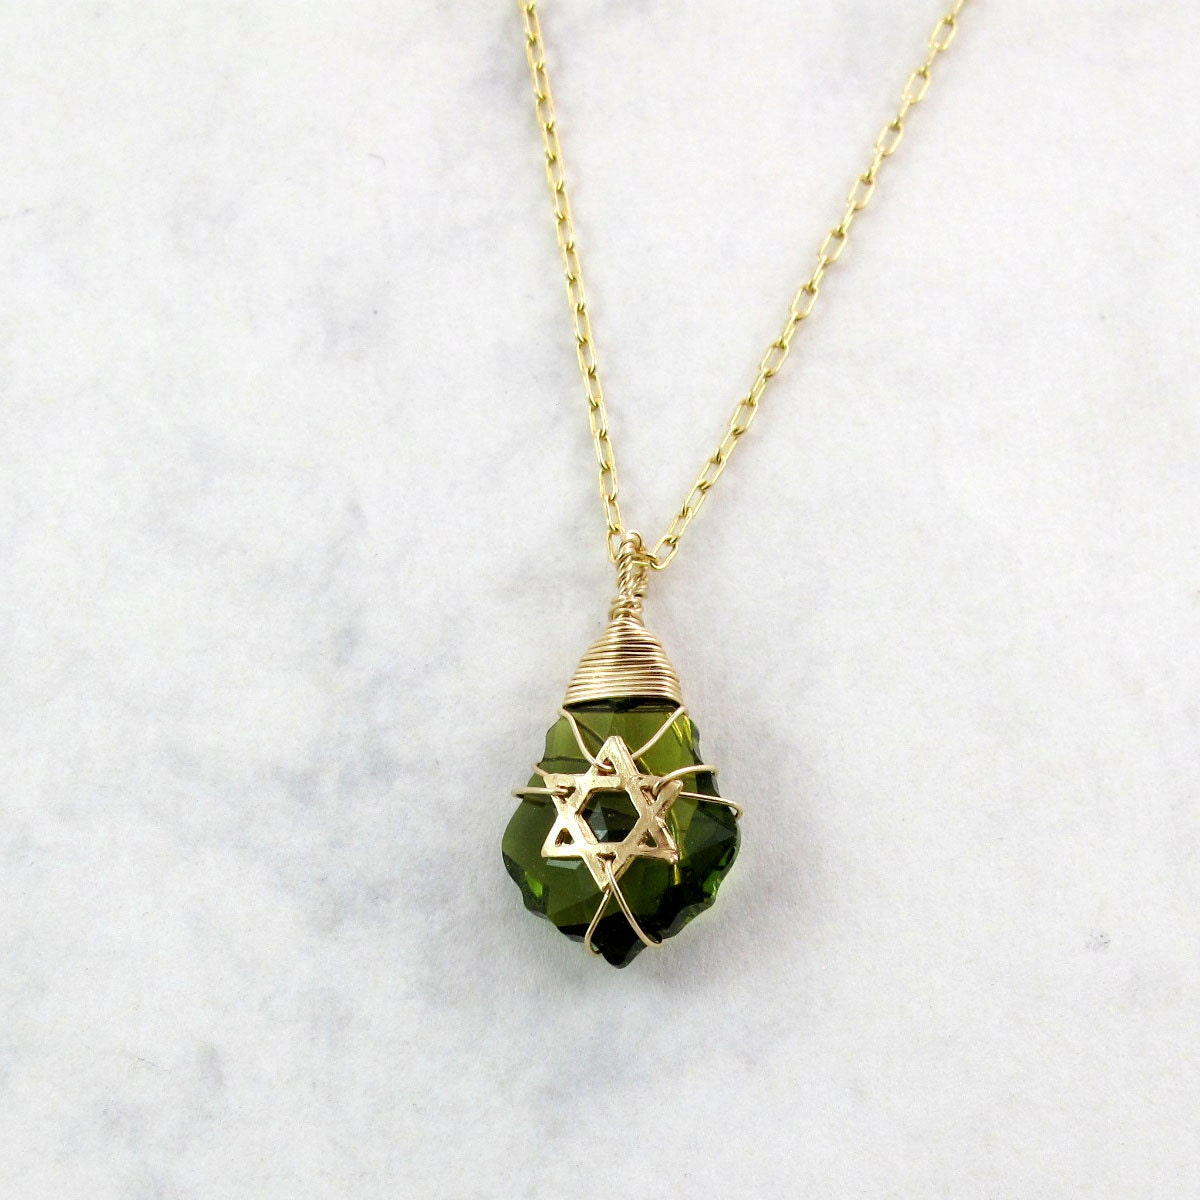 Star of David necklace with colorful Swarovski crystal  - IDF Green